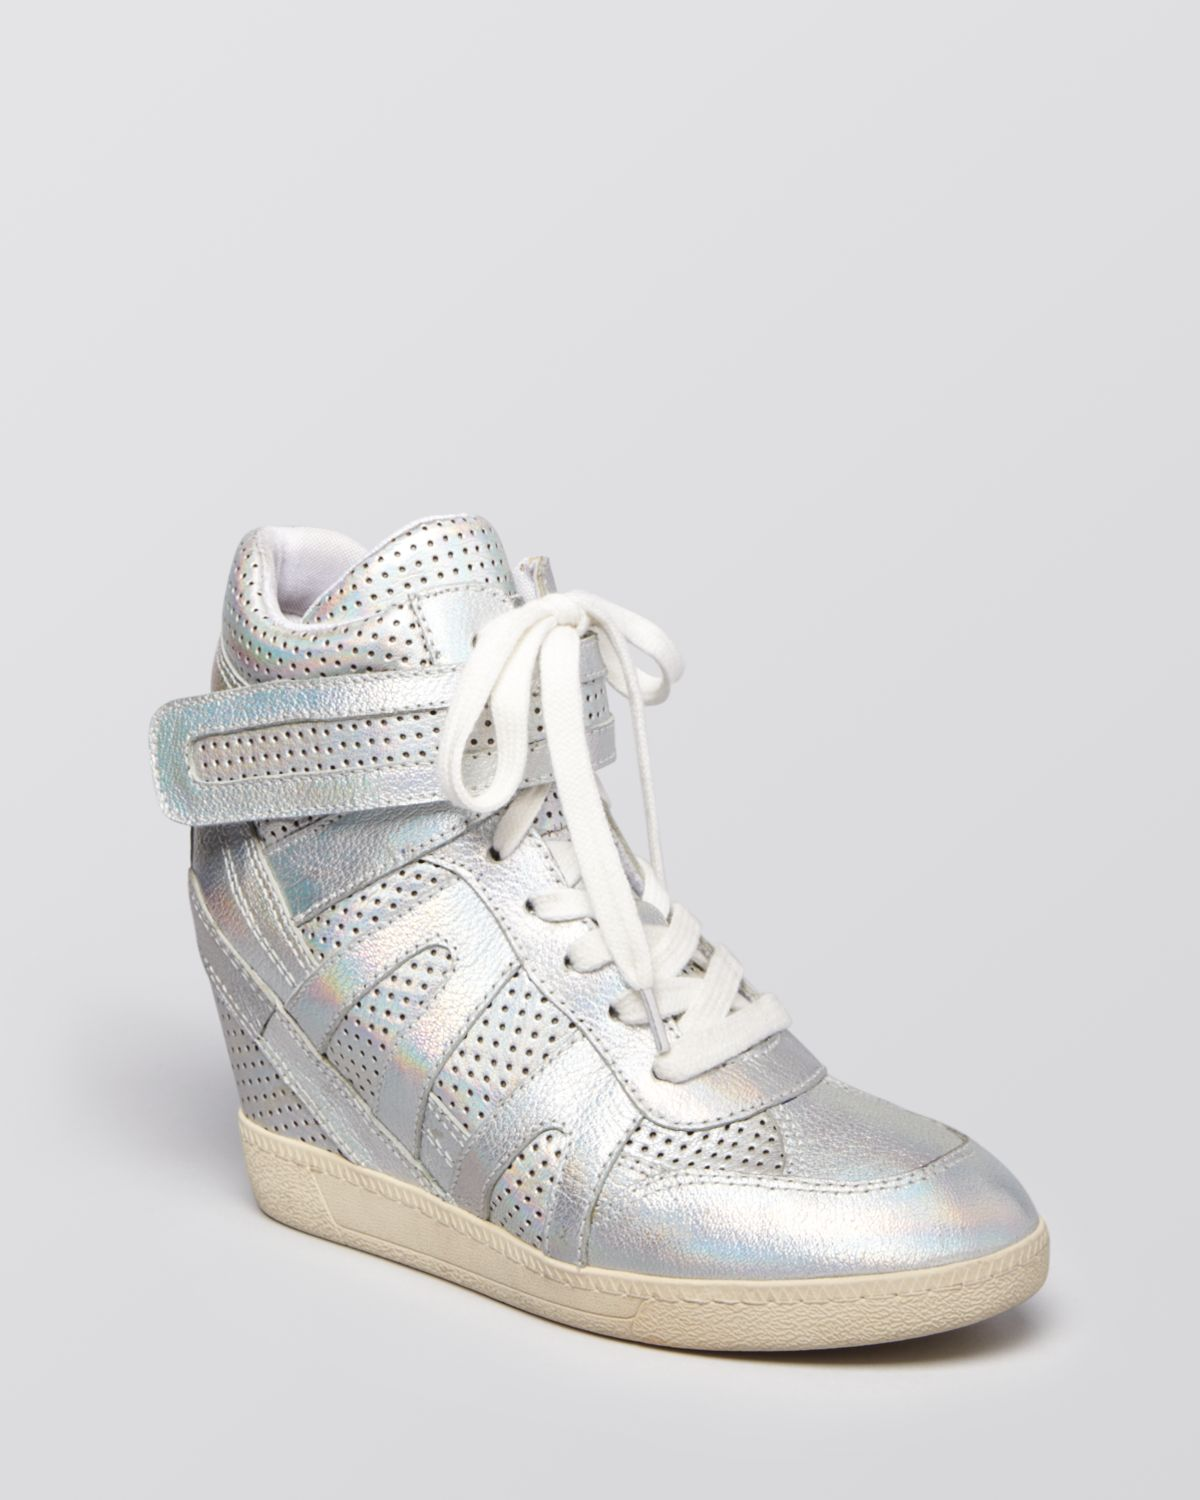 Ash Lace Up Wedge Sneakers - Beck | Bloomingdale's